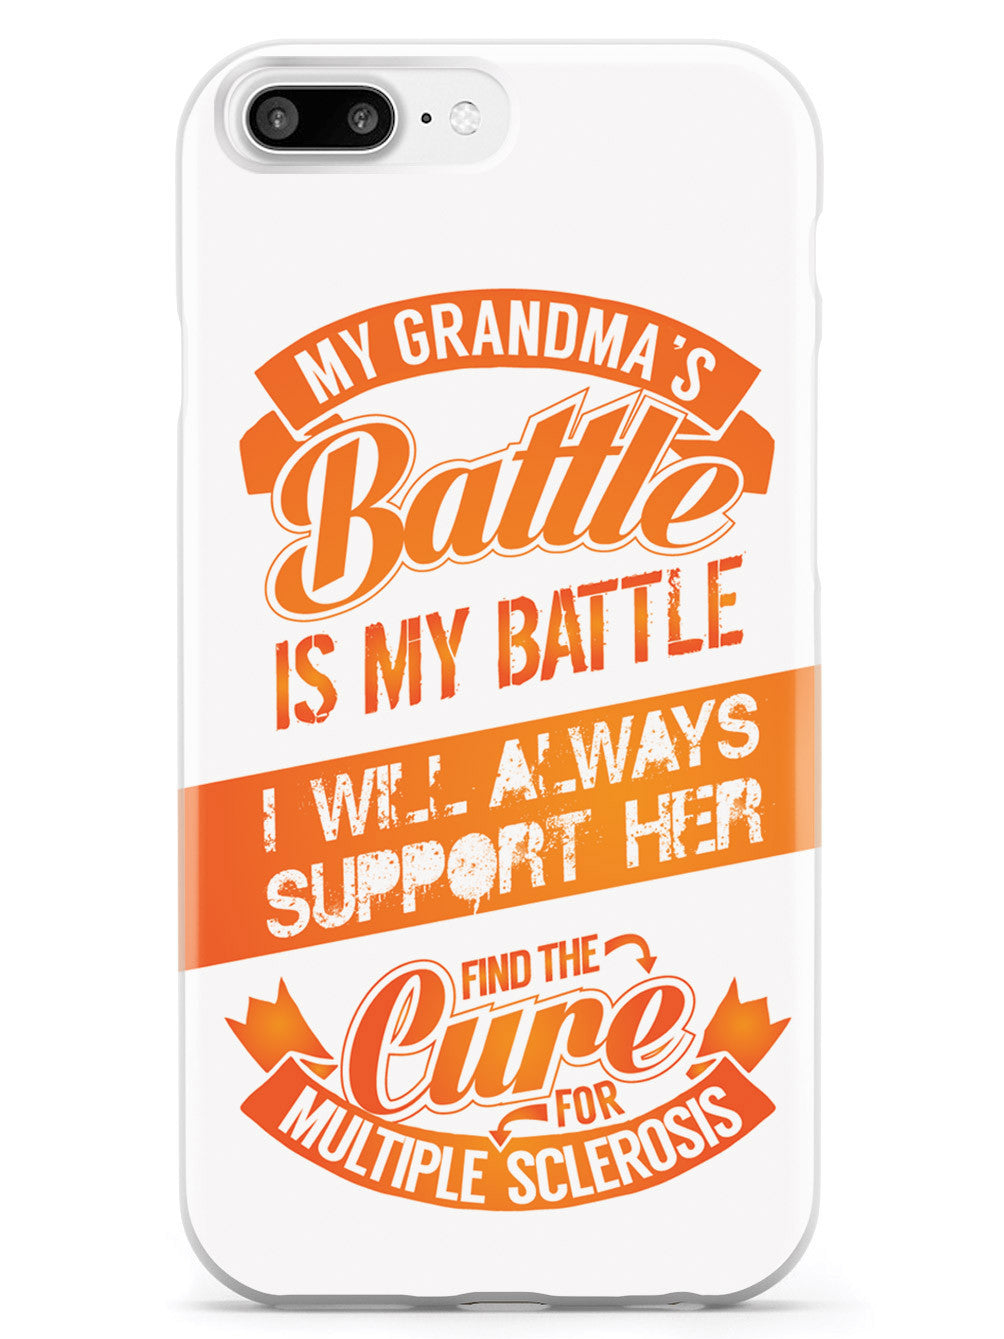 My Grandma's Battle - Multiple Sclerosis Awareness/Support Case